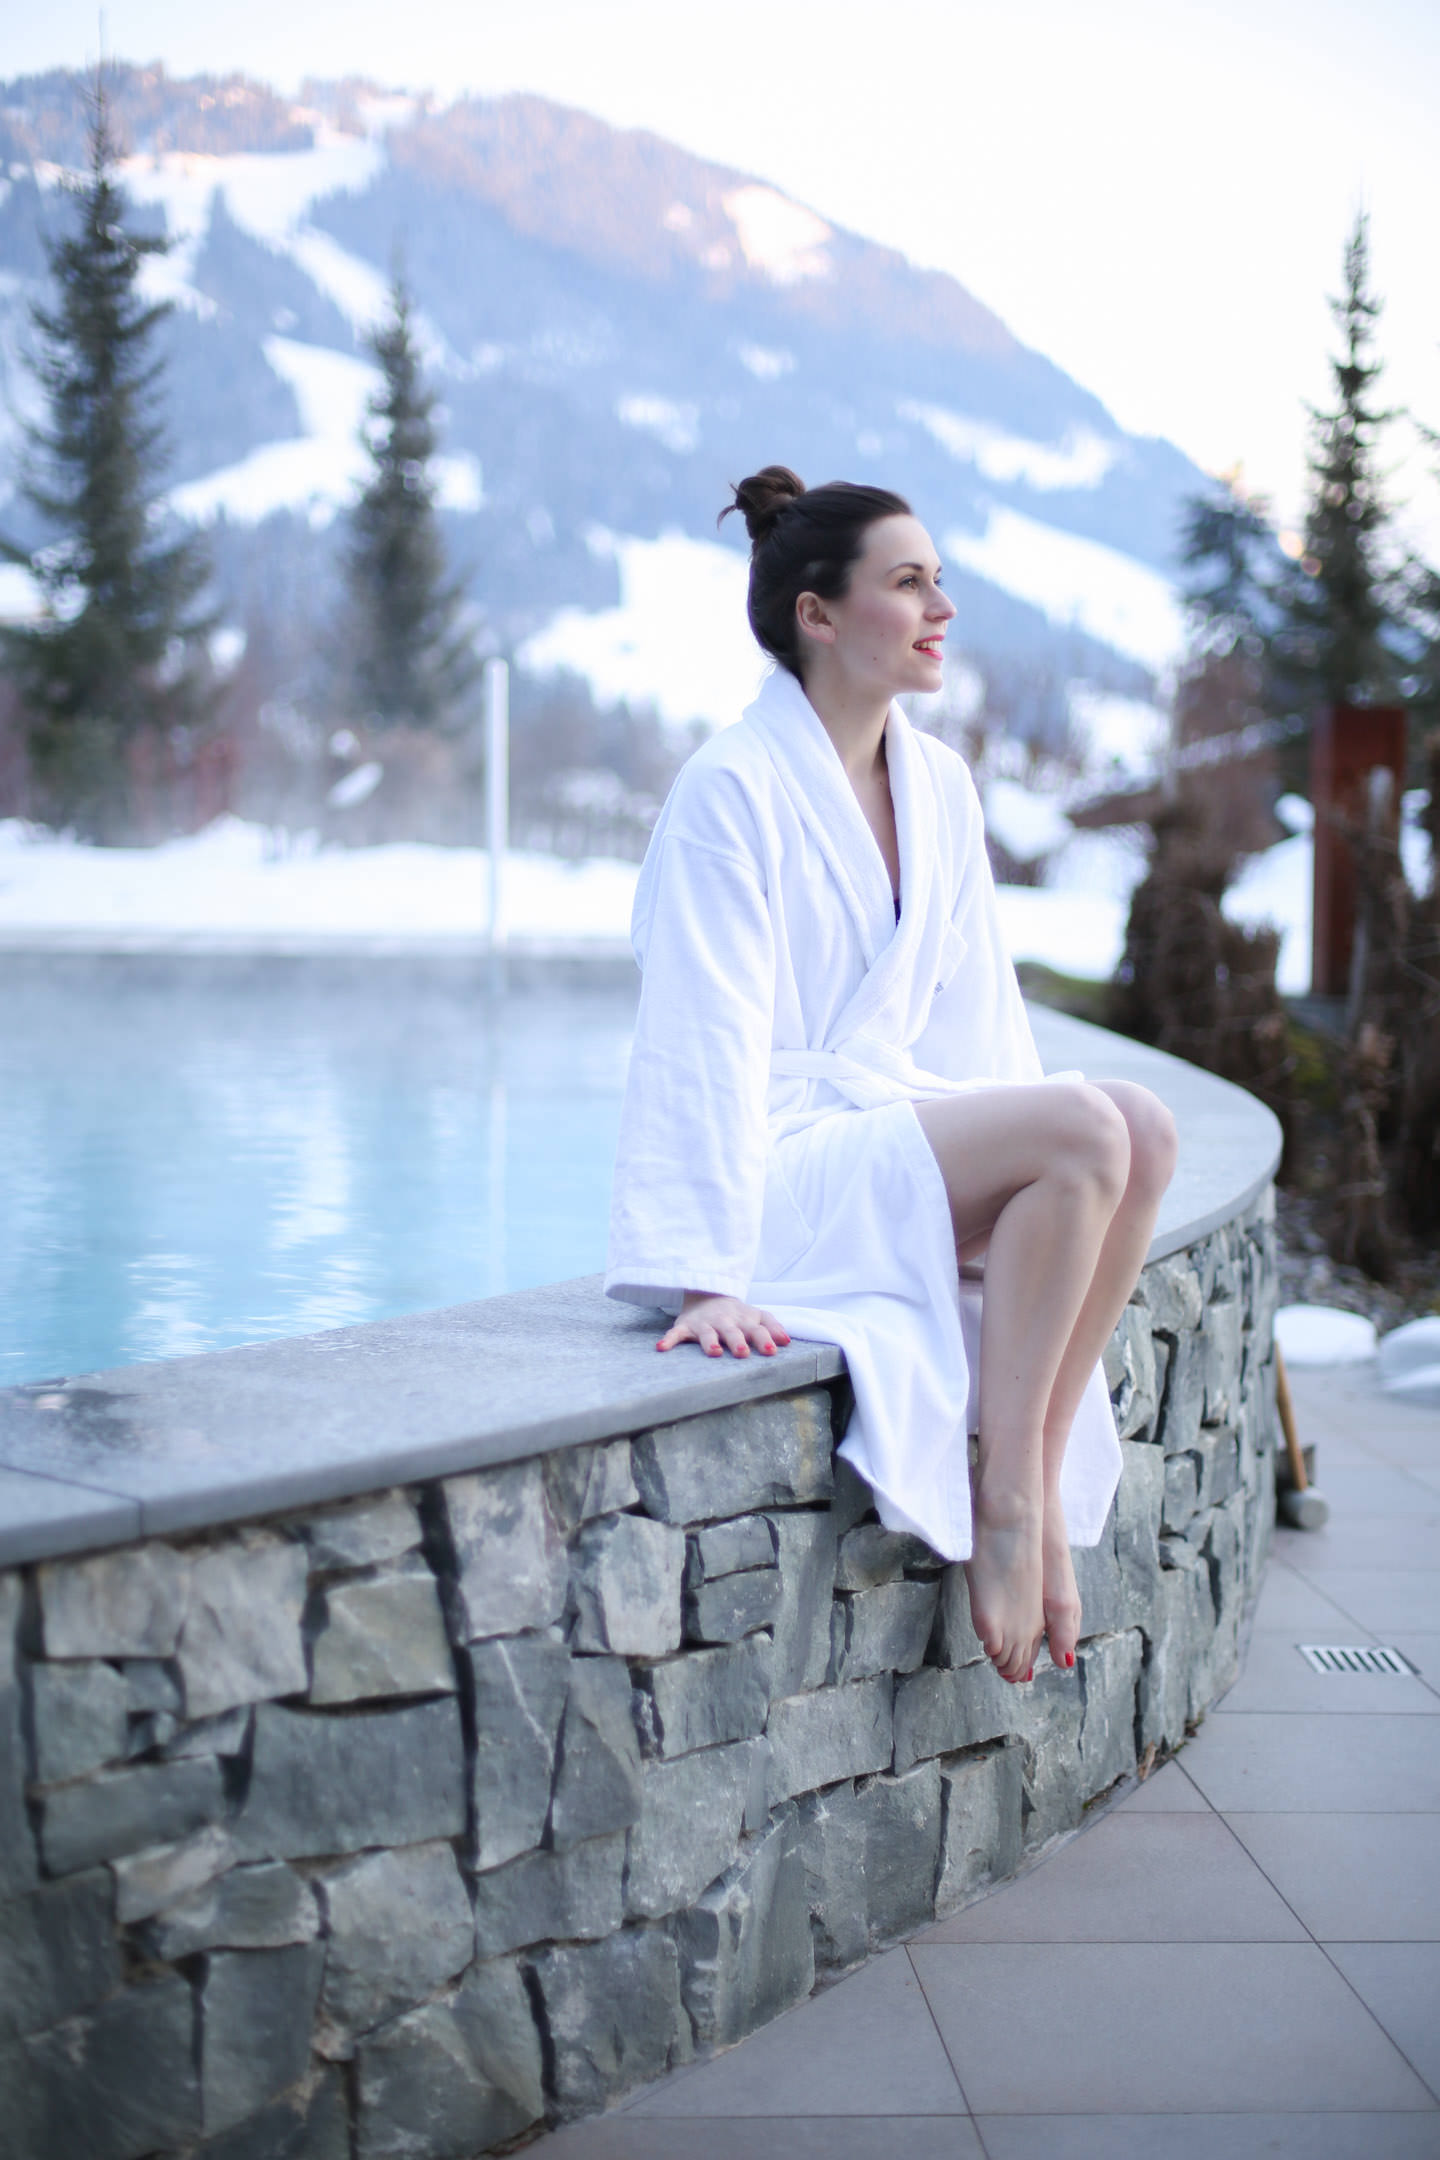 Blog-Mode-And-The-City-Lifestyle-Parenthese-Enchantee-Gstaad-Suisse-Gstaad-Palace-Piscine-Exterieure-2